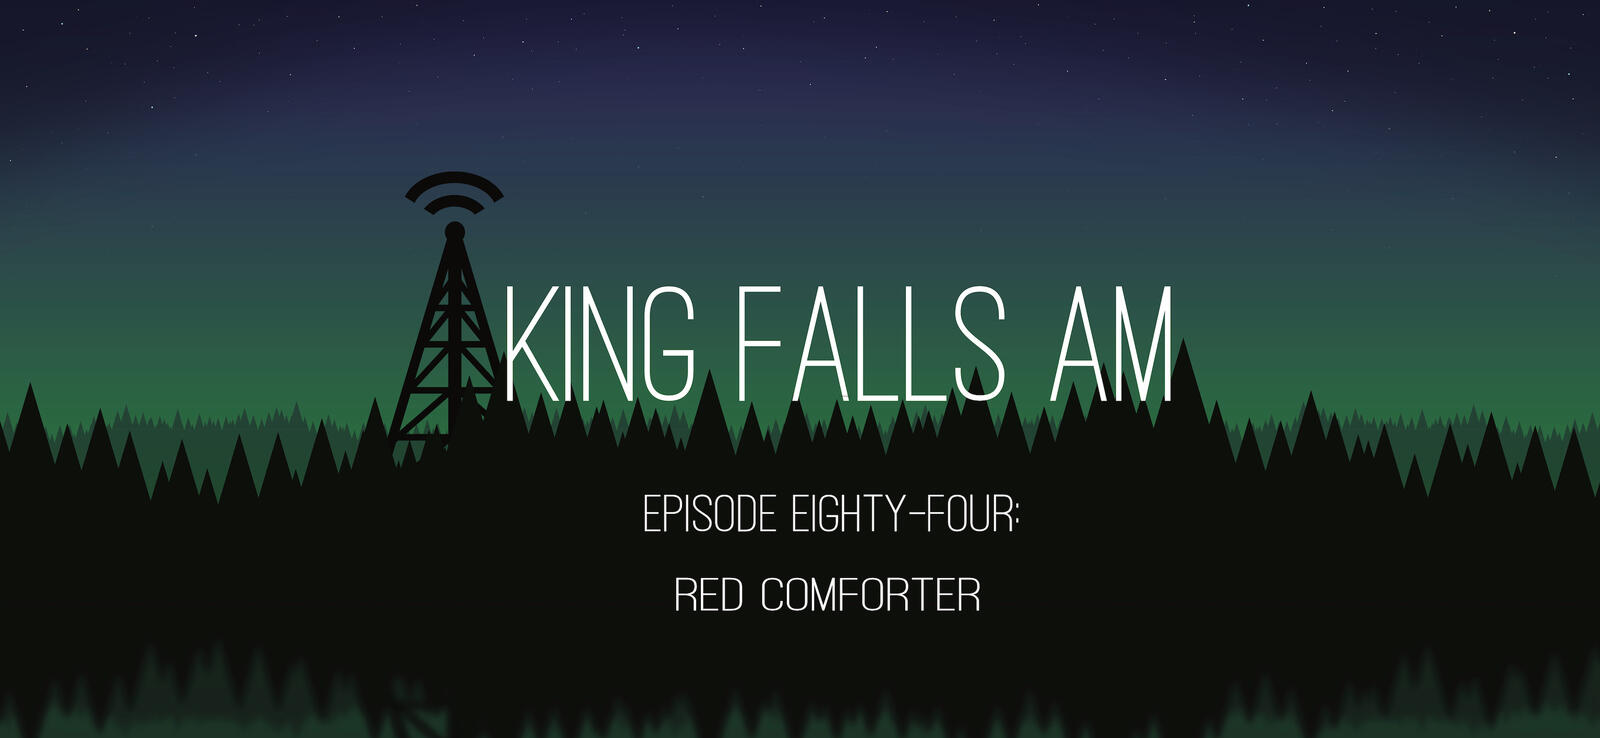 Episode Eighty-Four: Red Comforter